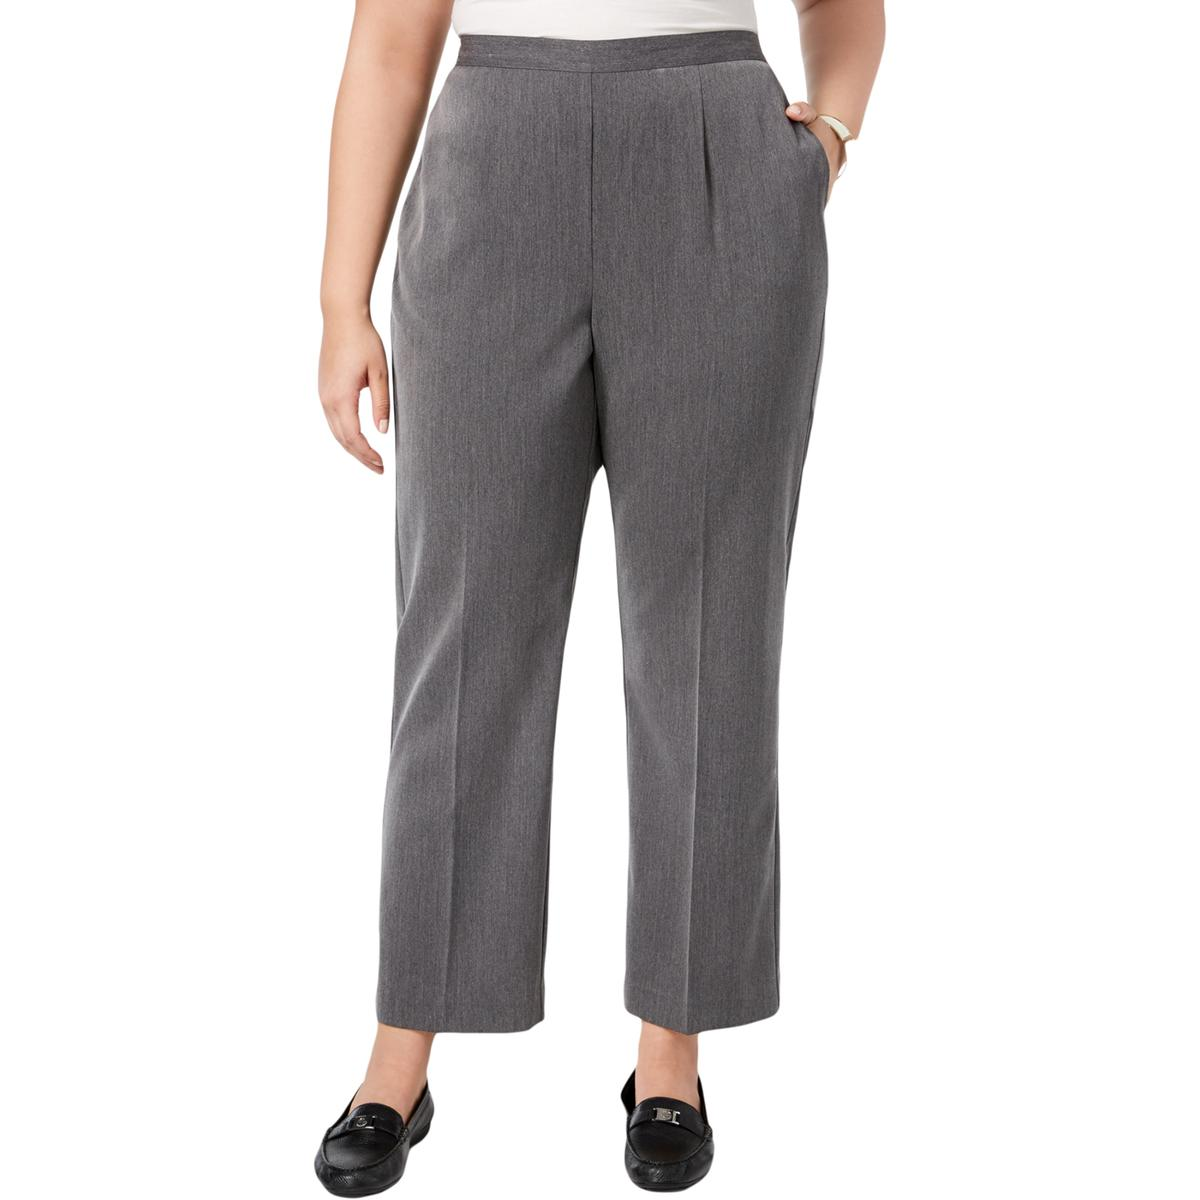 39b1f833da9c6 Alfred Dunner Womens Pull On Classic Fit Office Wear Ankle Pants ...